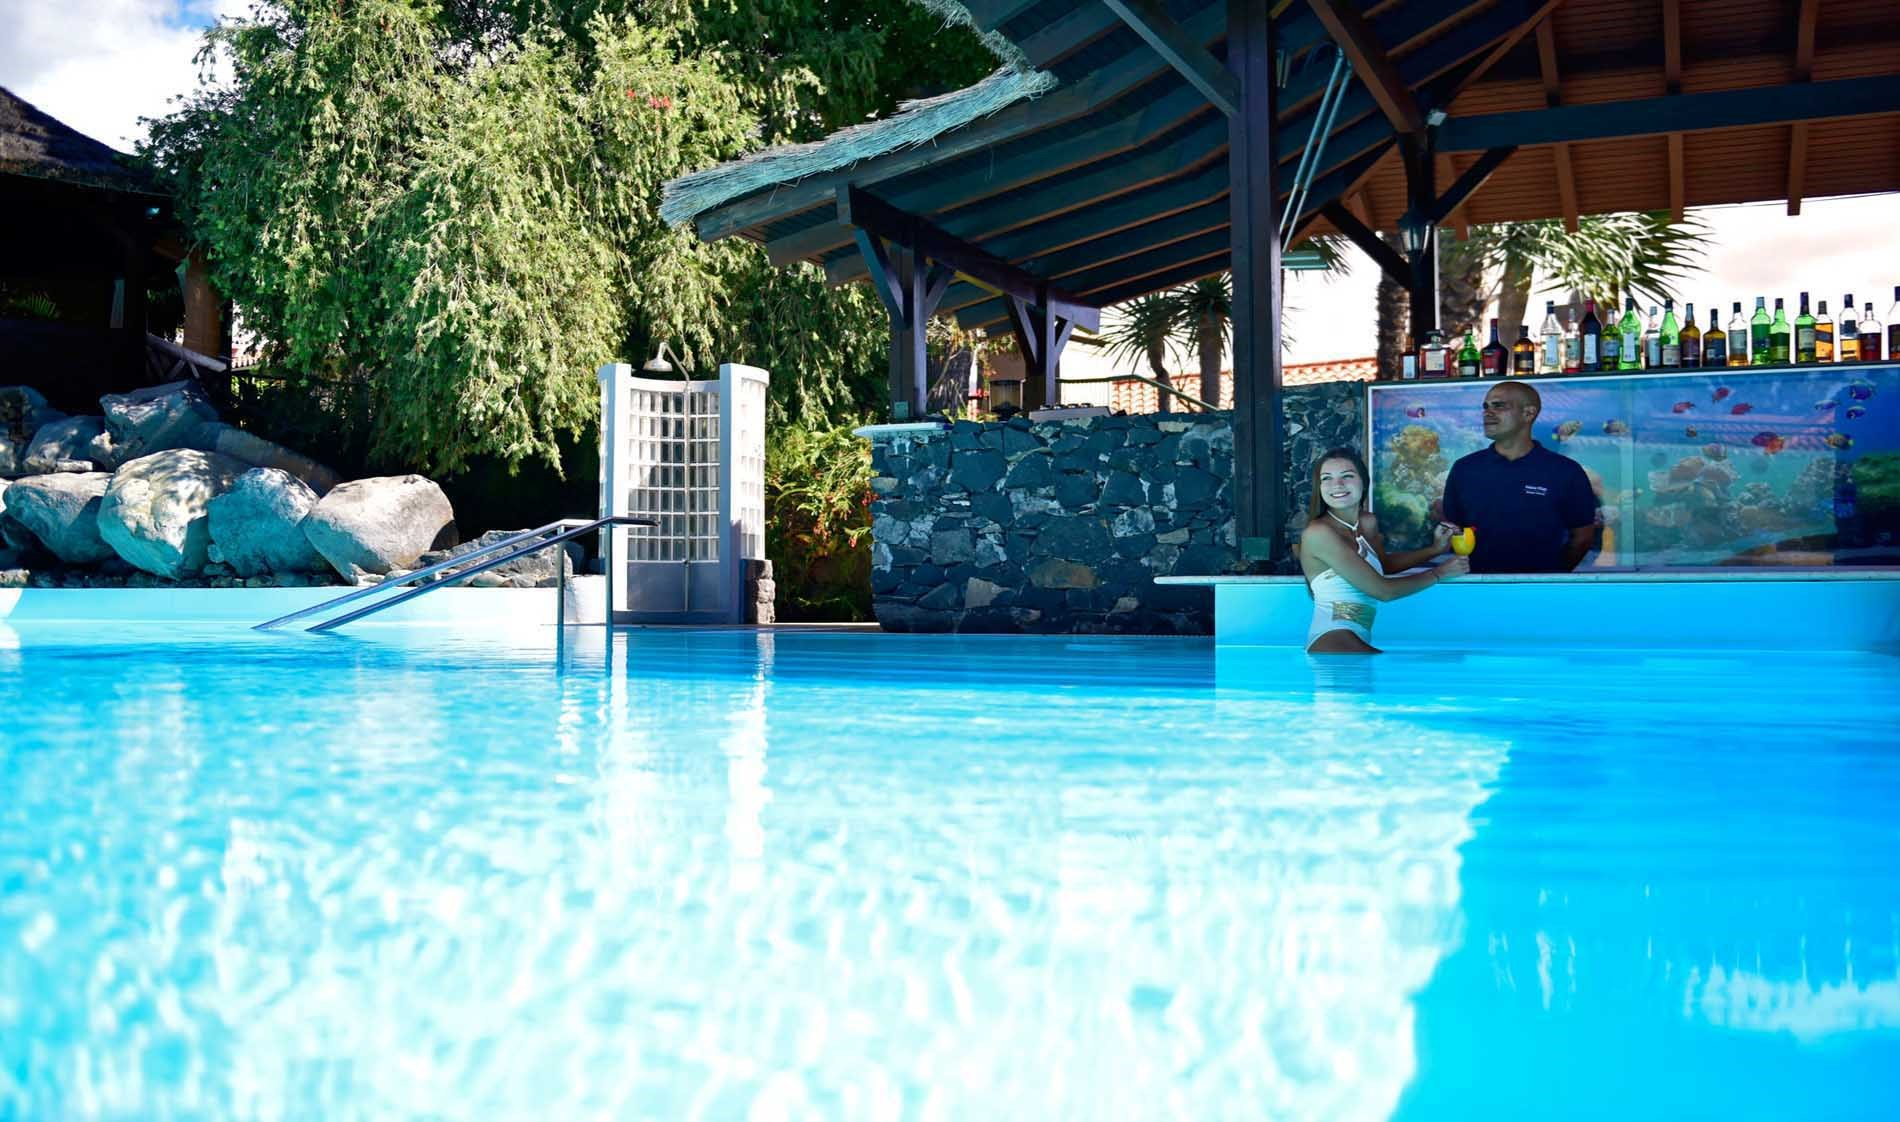 pestana-village-pool-bar